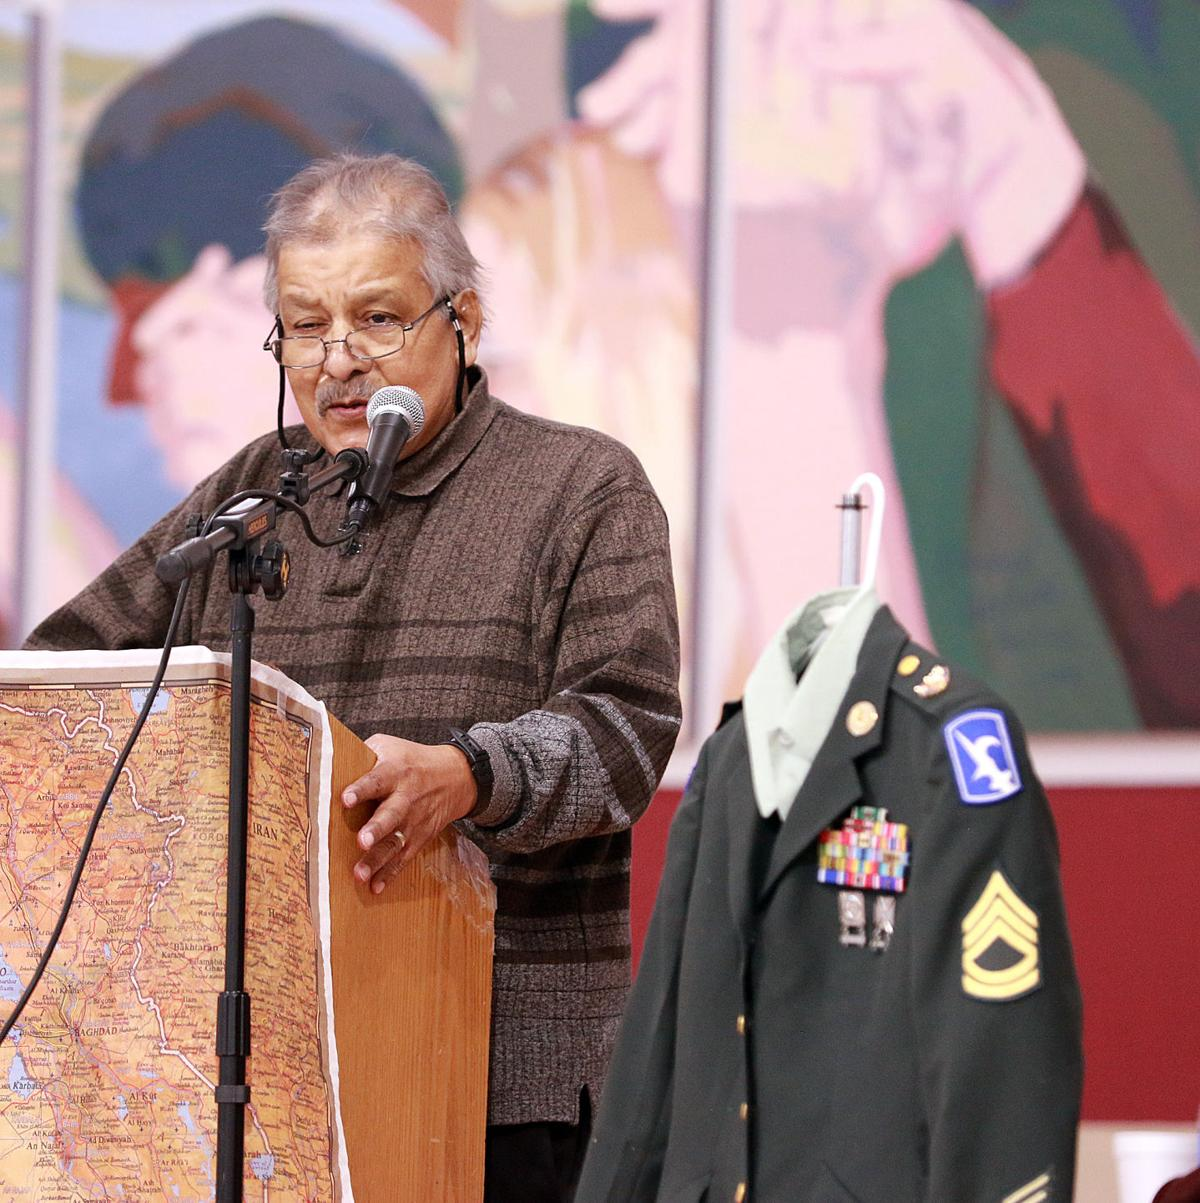 Chicano/Mexican-American military service memorial unveiled in Scottsbluff Monday